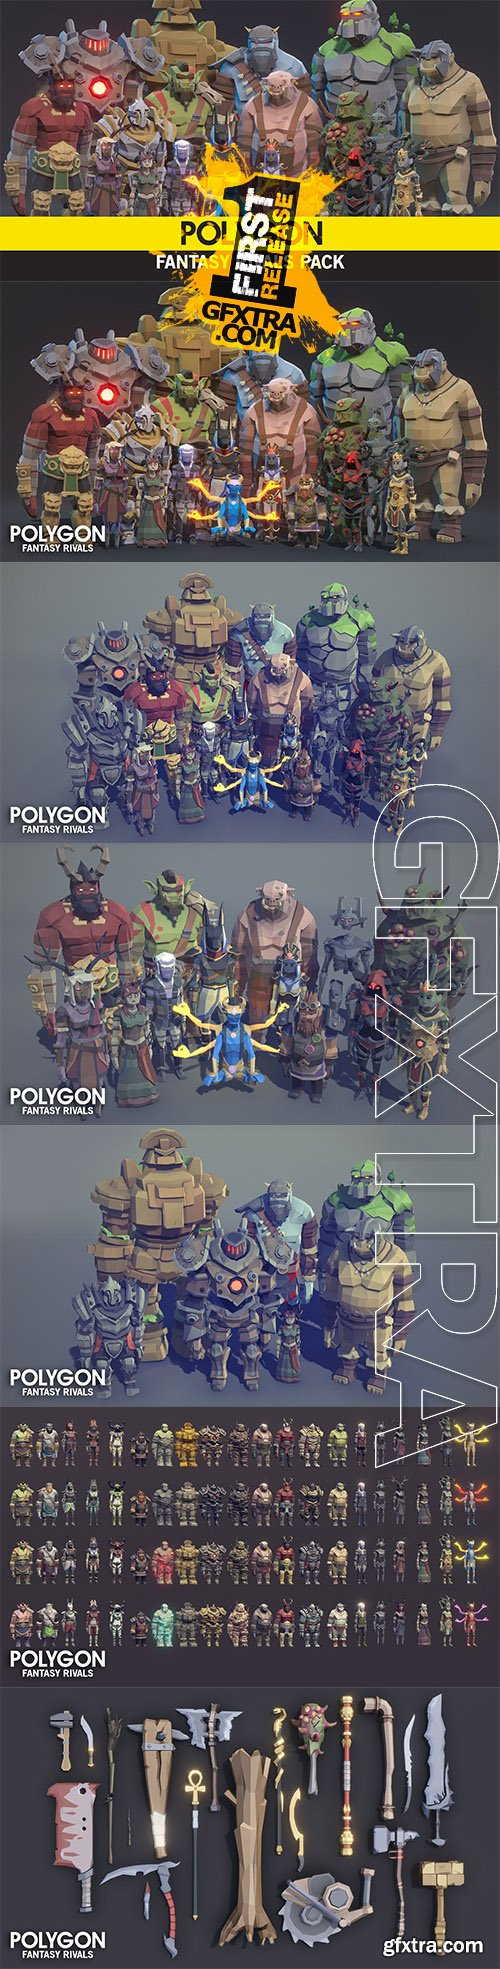 Cgtrader - POLYGON - Fantasy Rivals Pack Low-poly 3D model